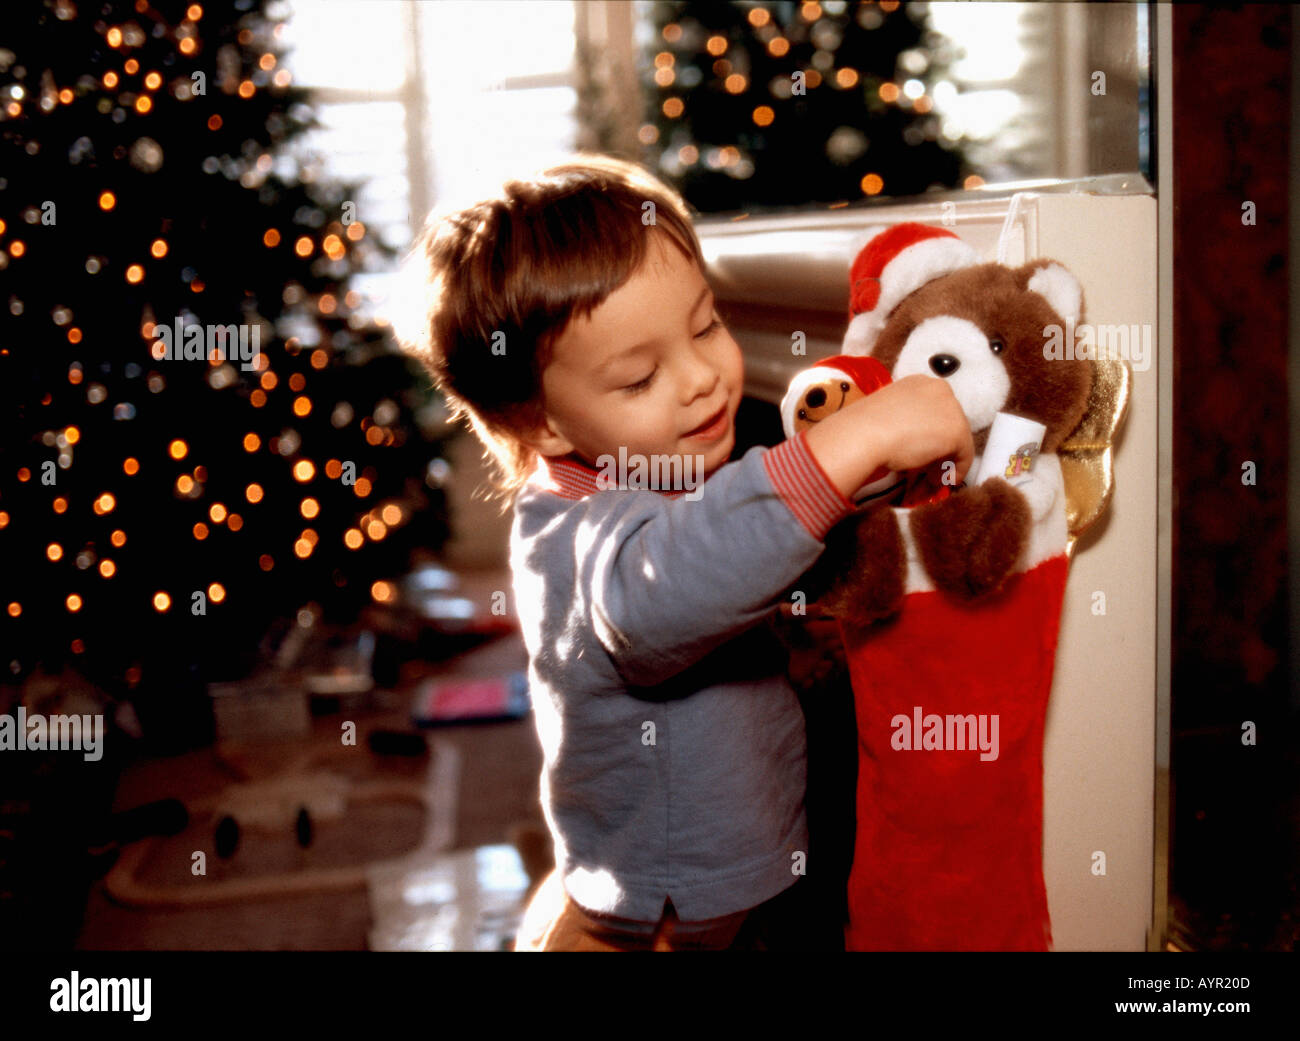 3 Year Old Boy Opening Christmas Stocking On Morning With Tree In Back Ground